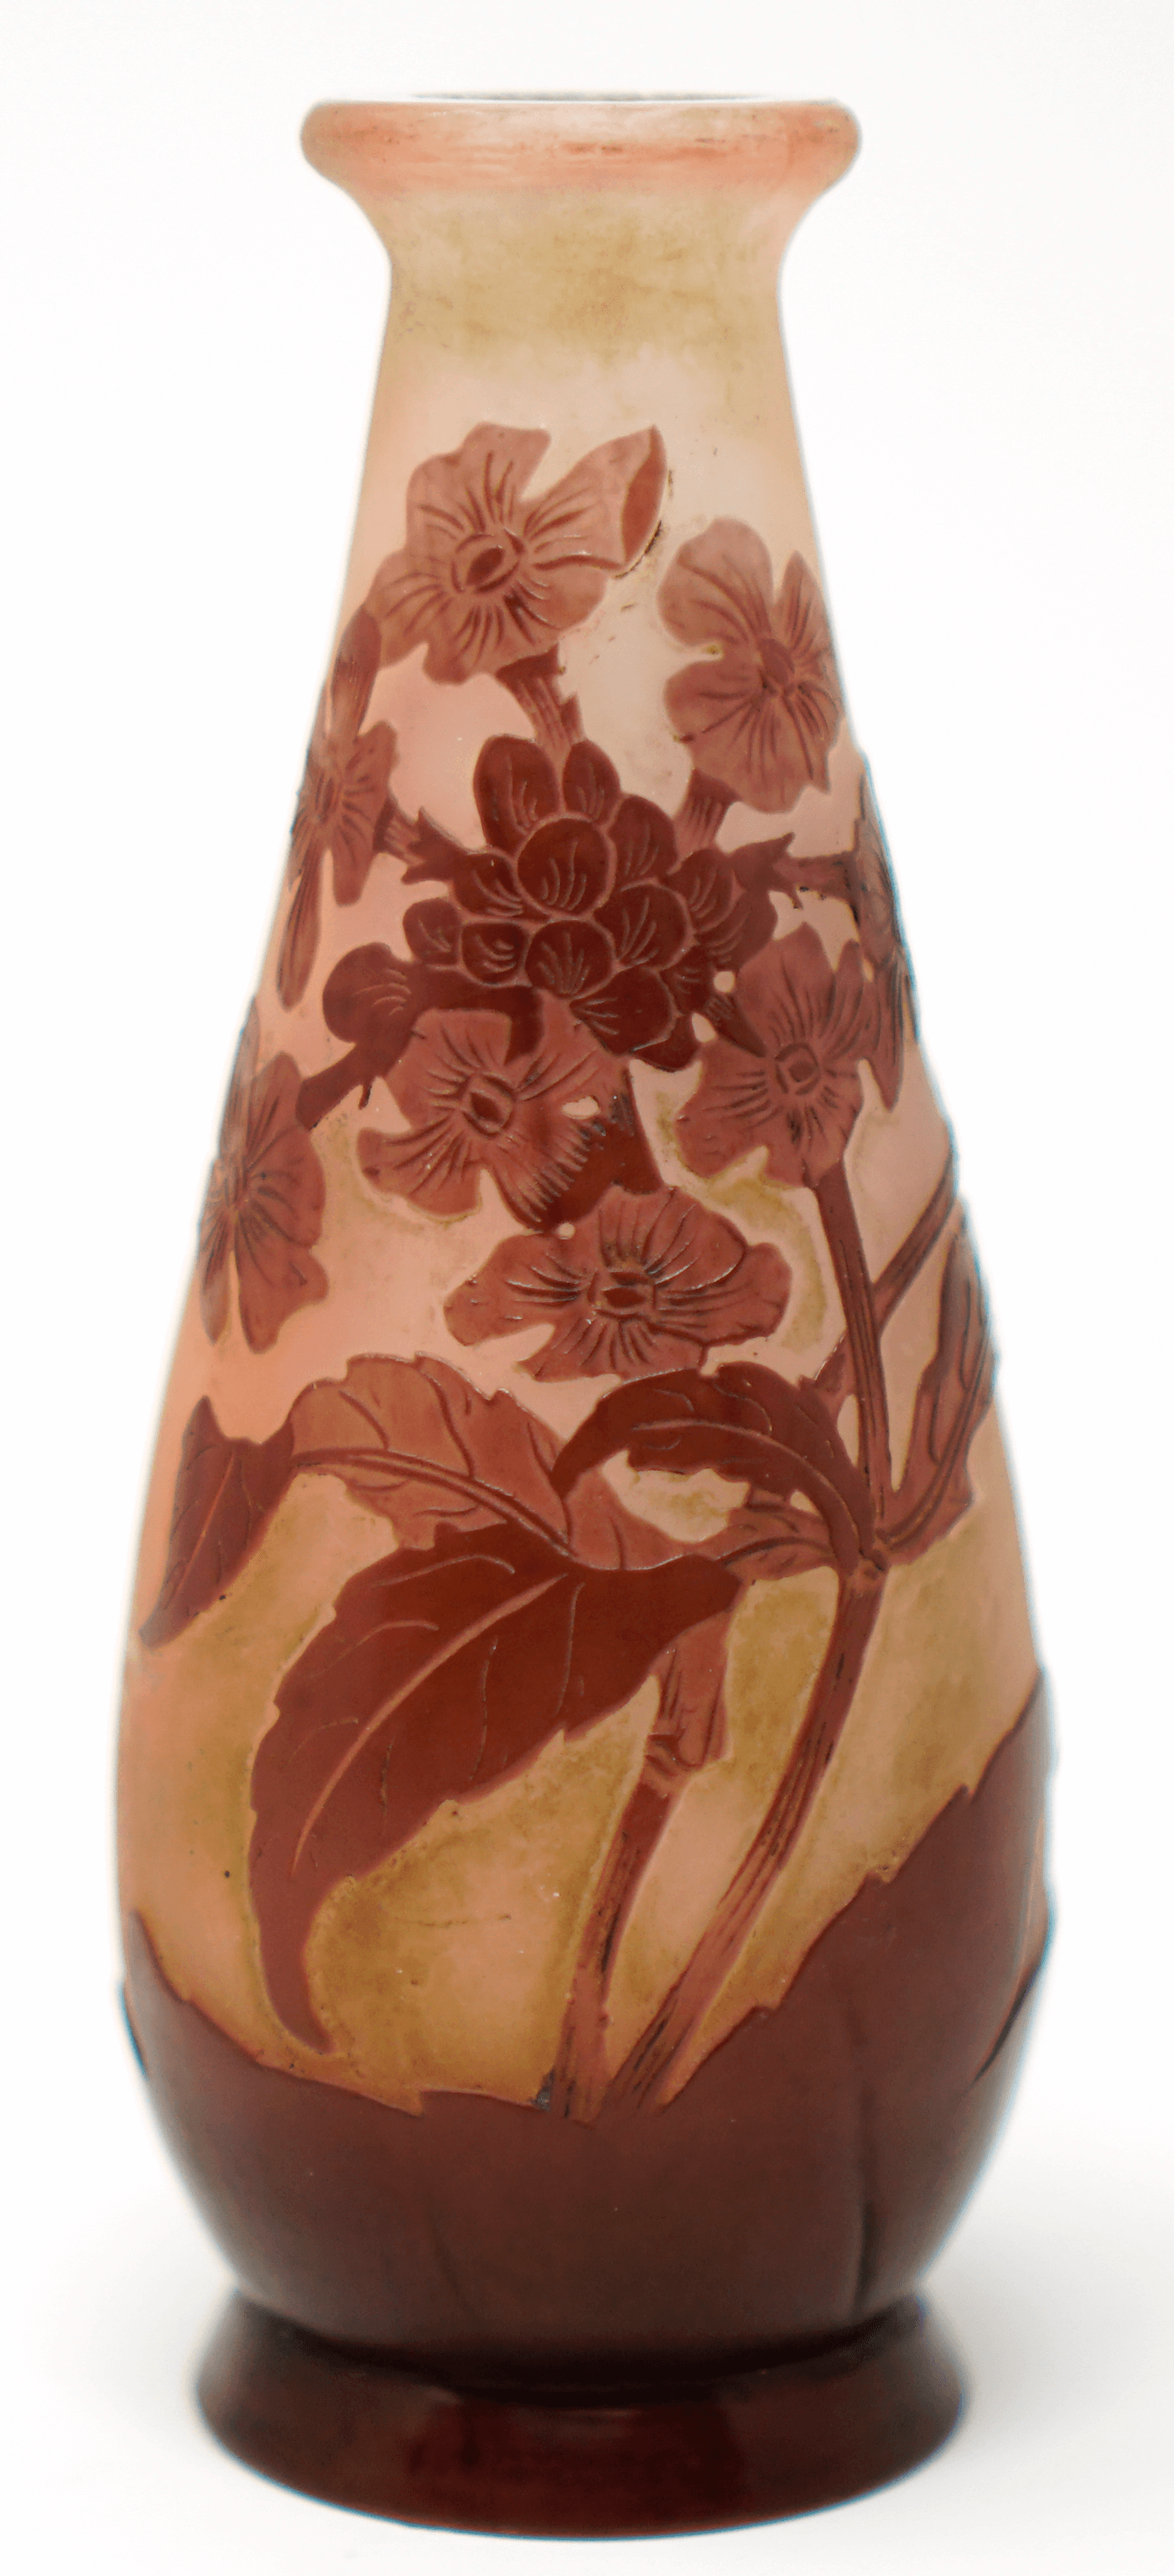 Emile Galle flower design decorative fluted vase